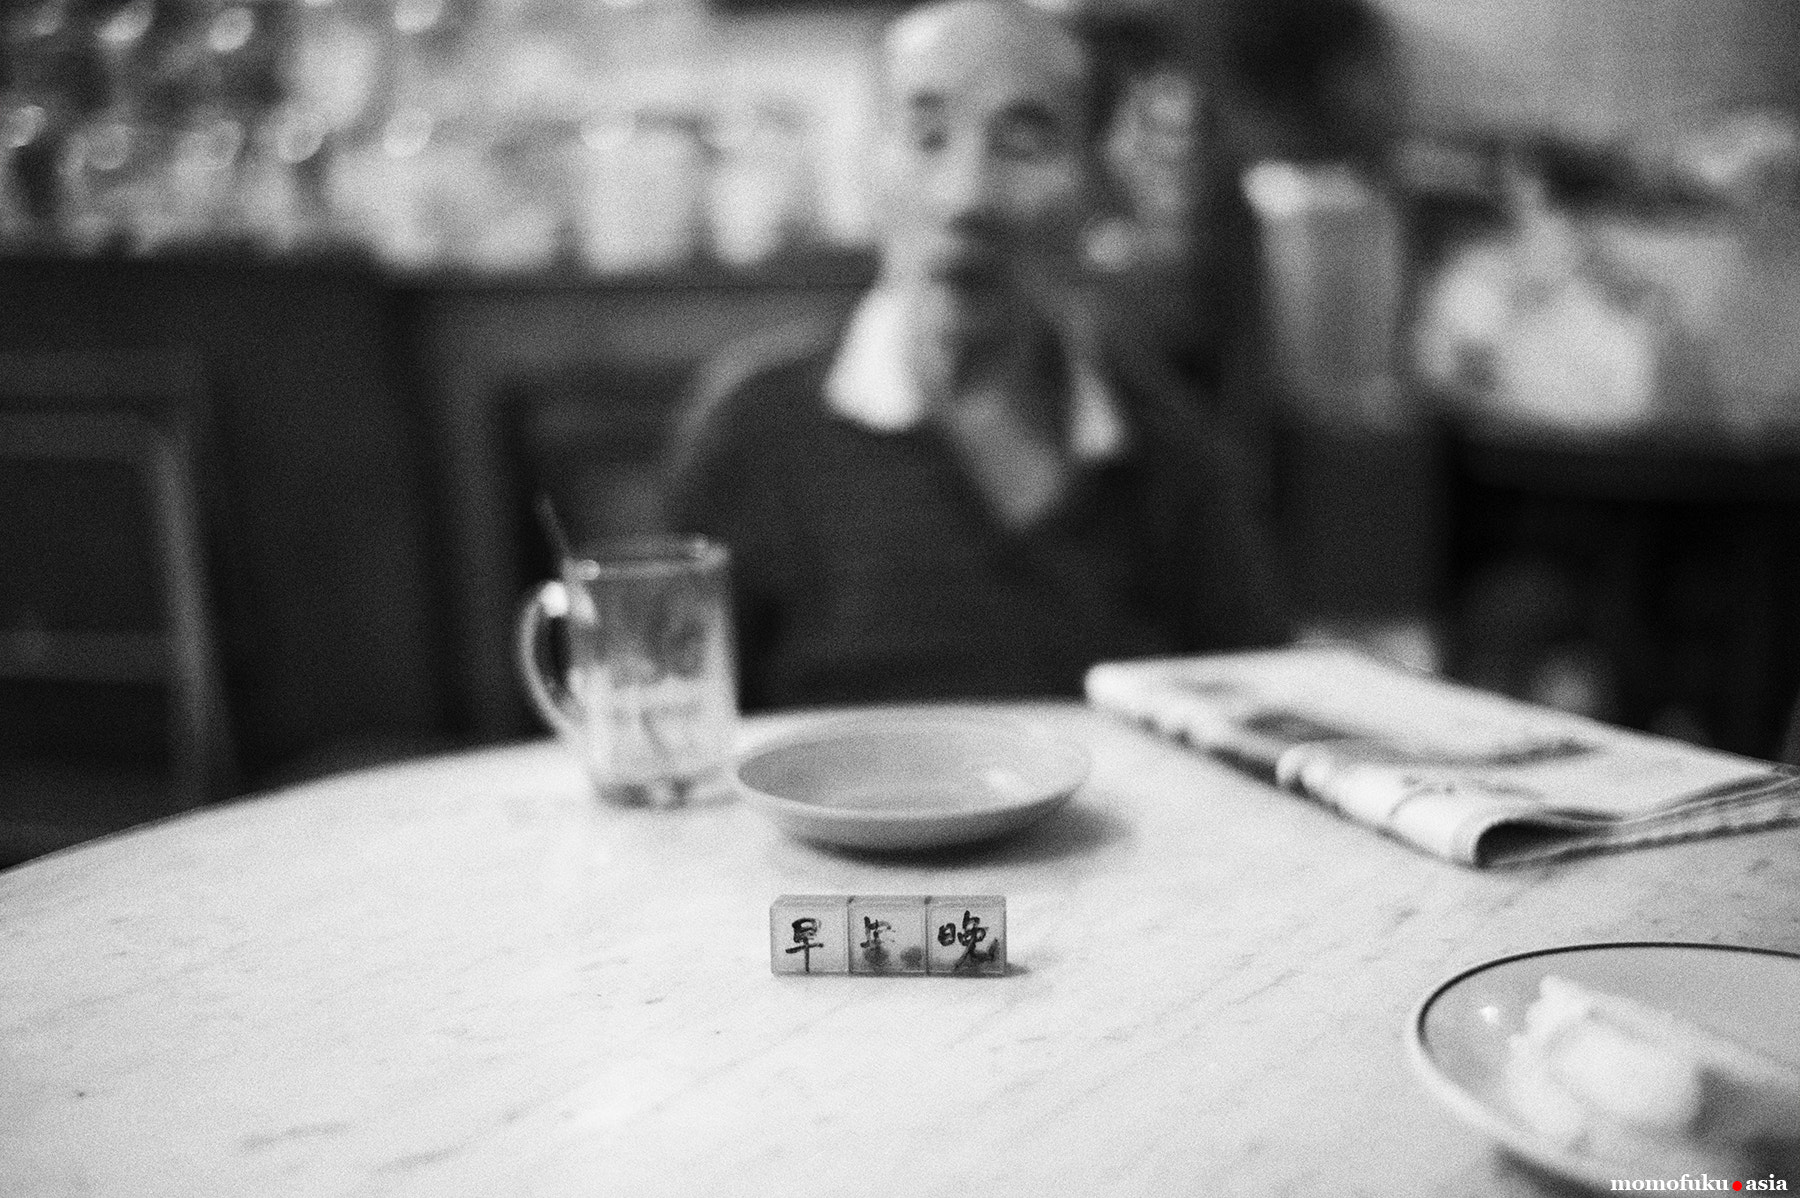 Photograph conversations in a kopitiam by  momofuku on 500px